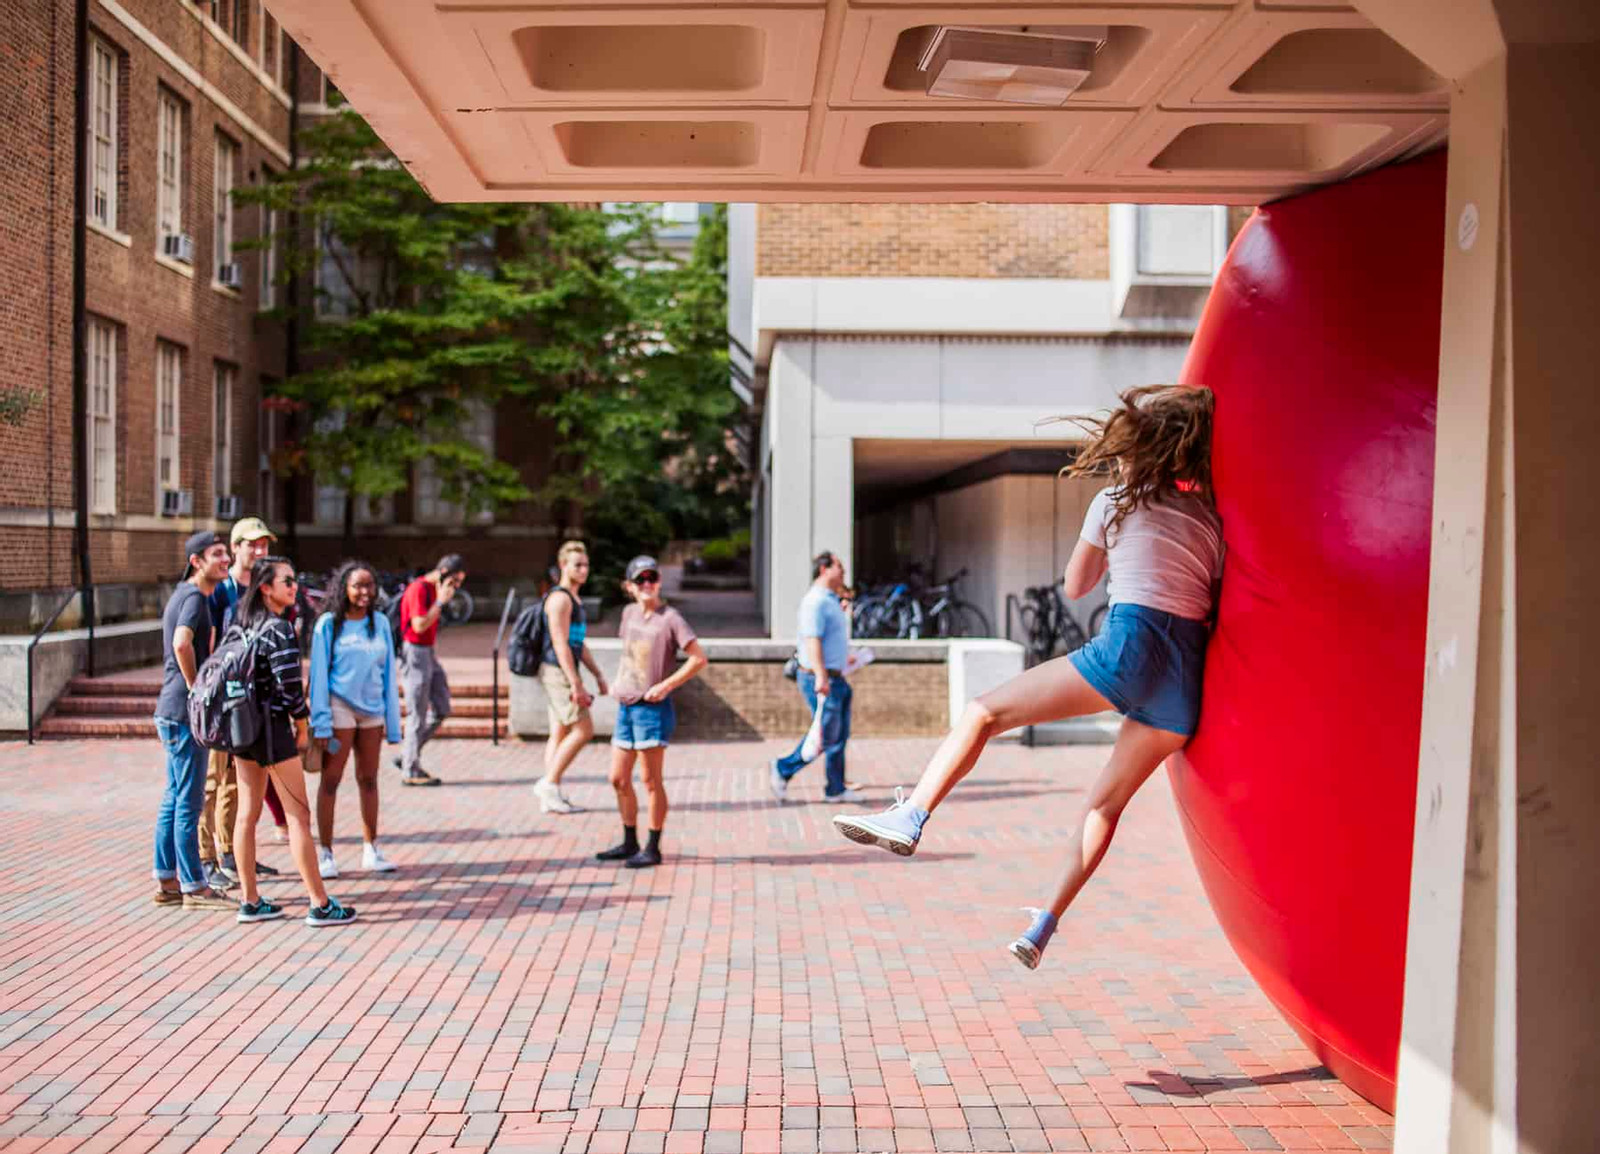 image of large red ball and a girl bouncing against it with a group watching, standing on a brick sidewalk